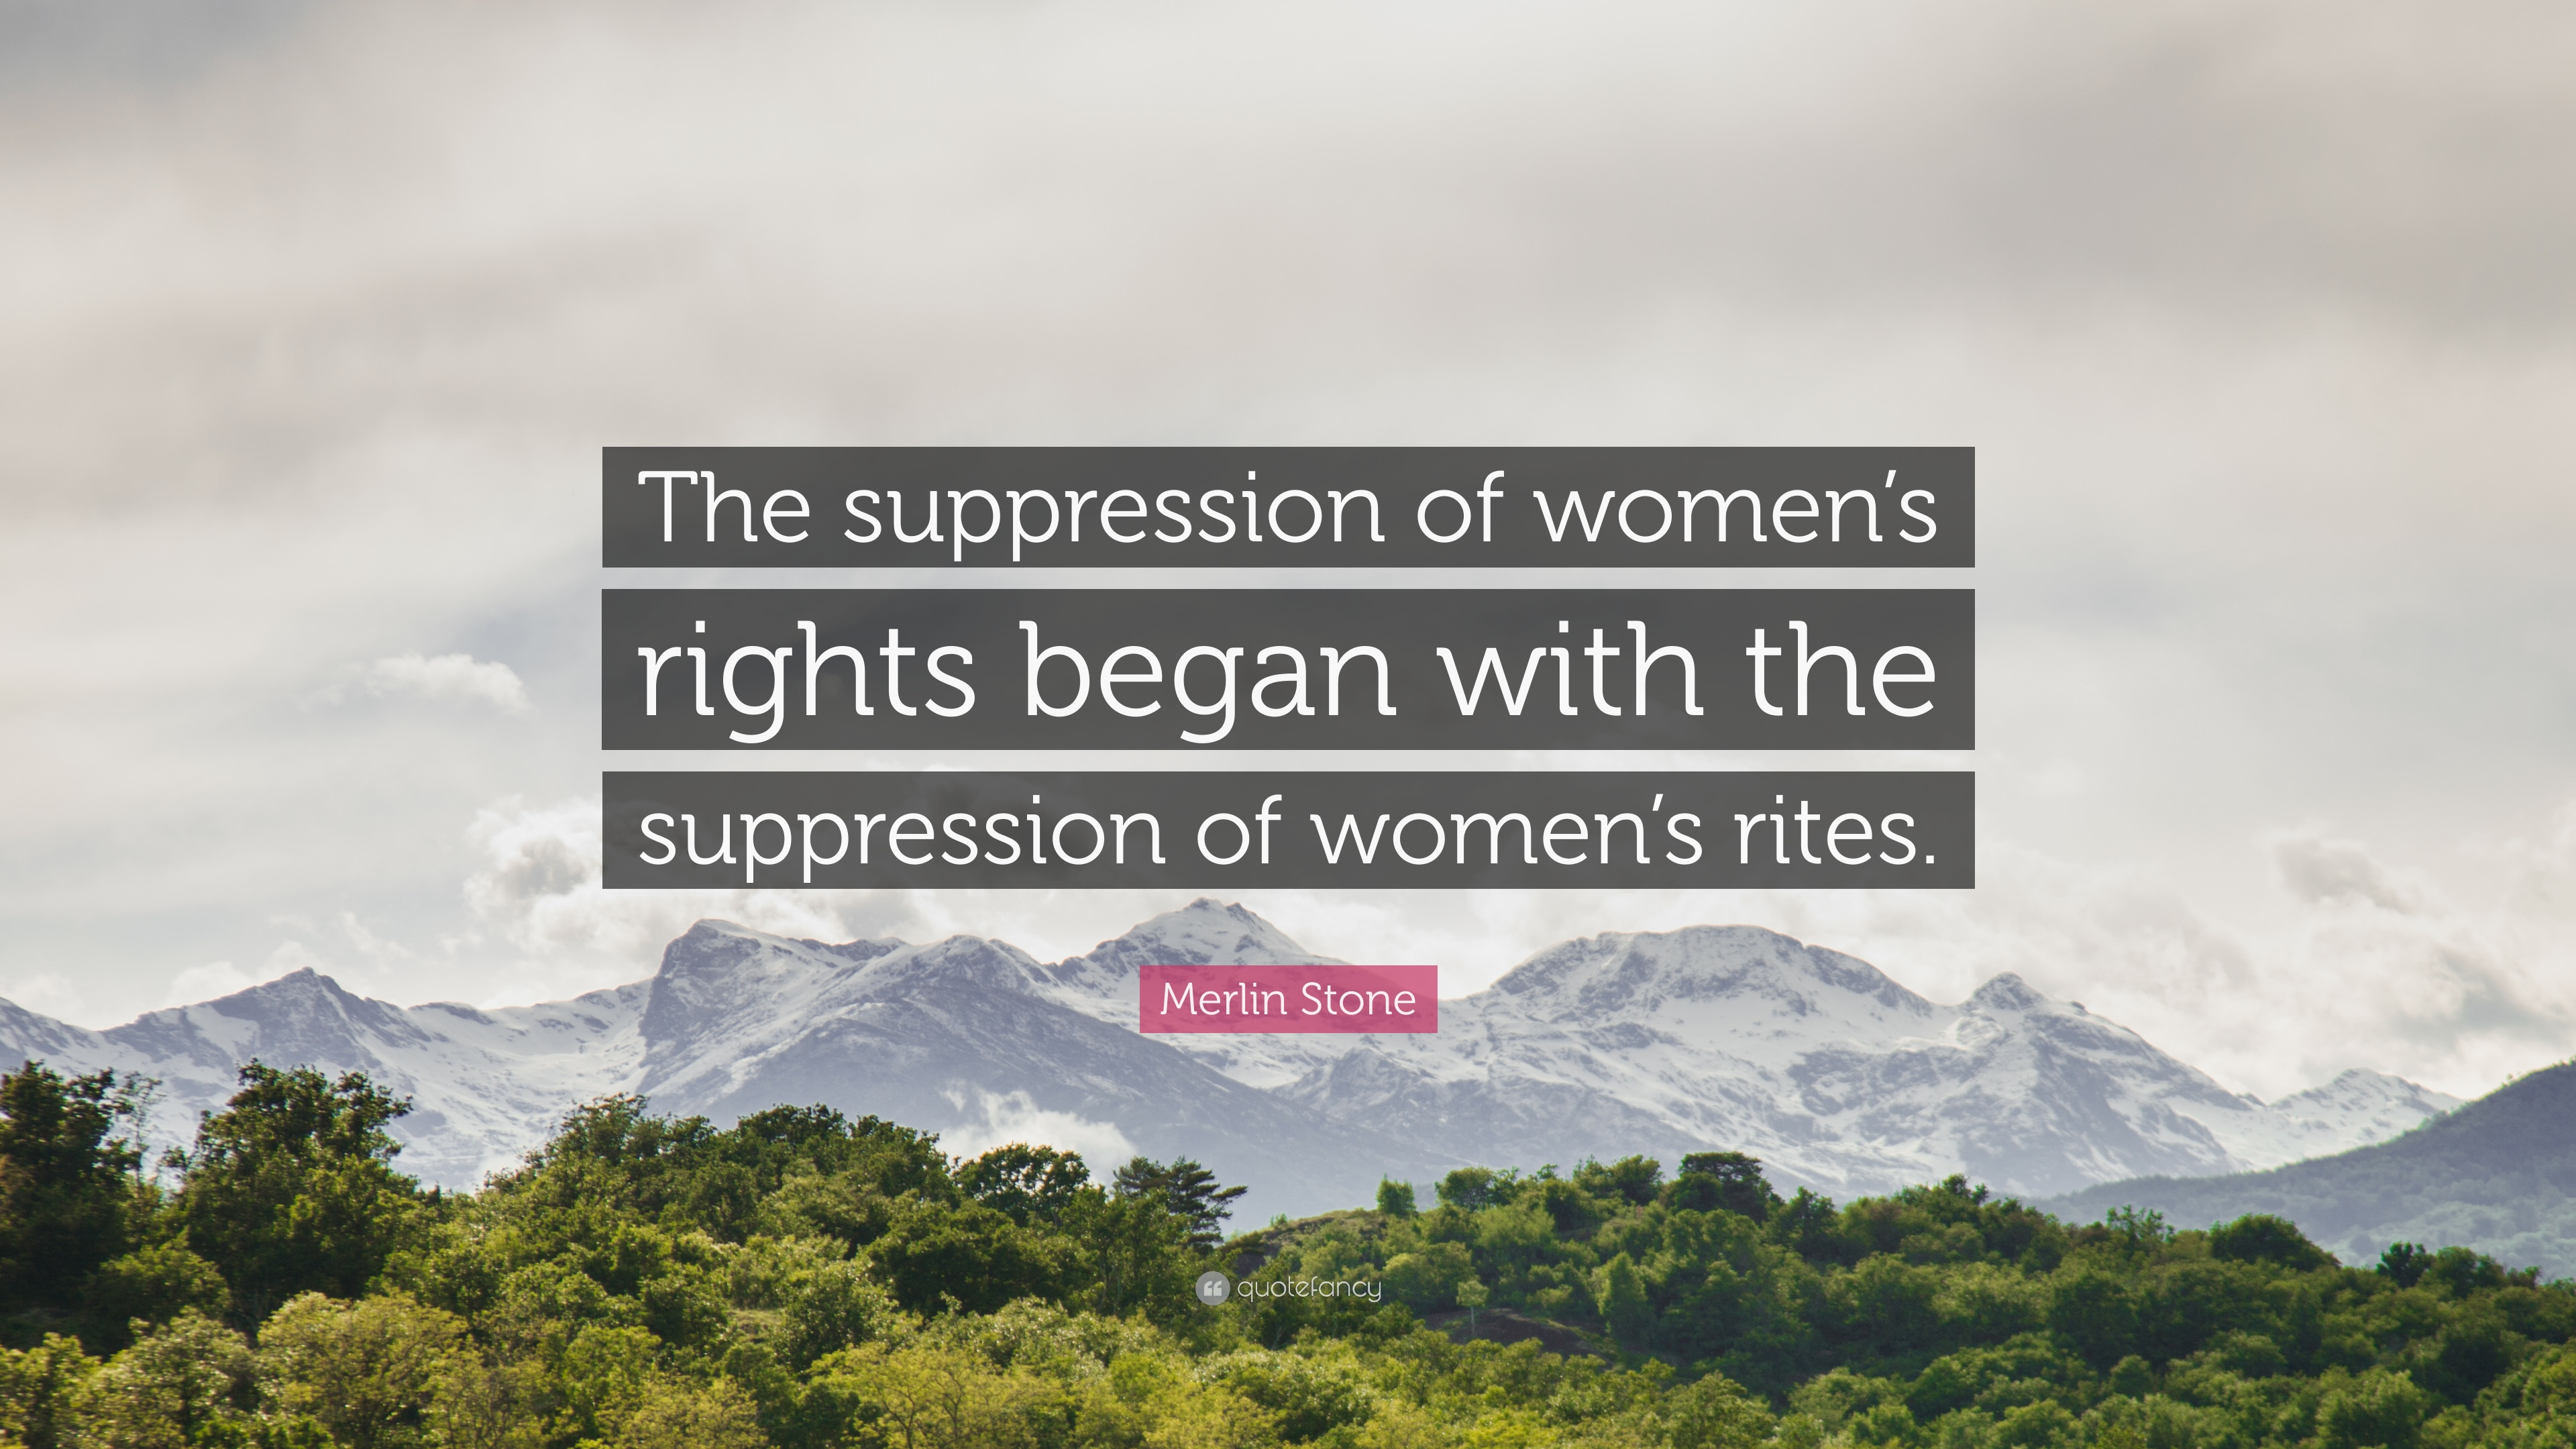 International Convention for the Suppression of the Traffic in Women and Children